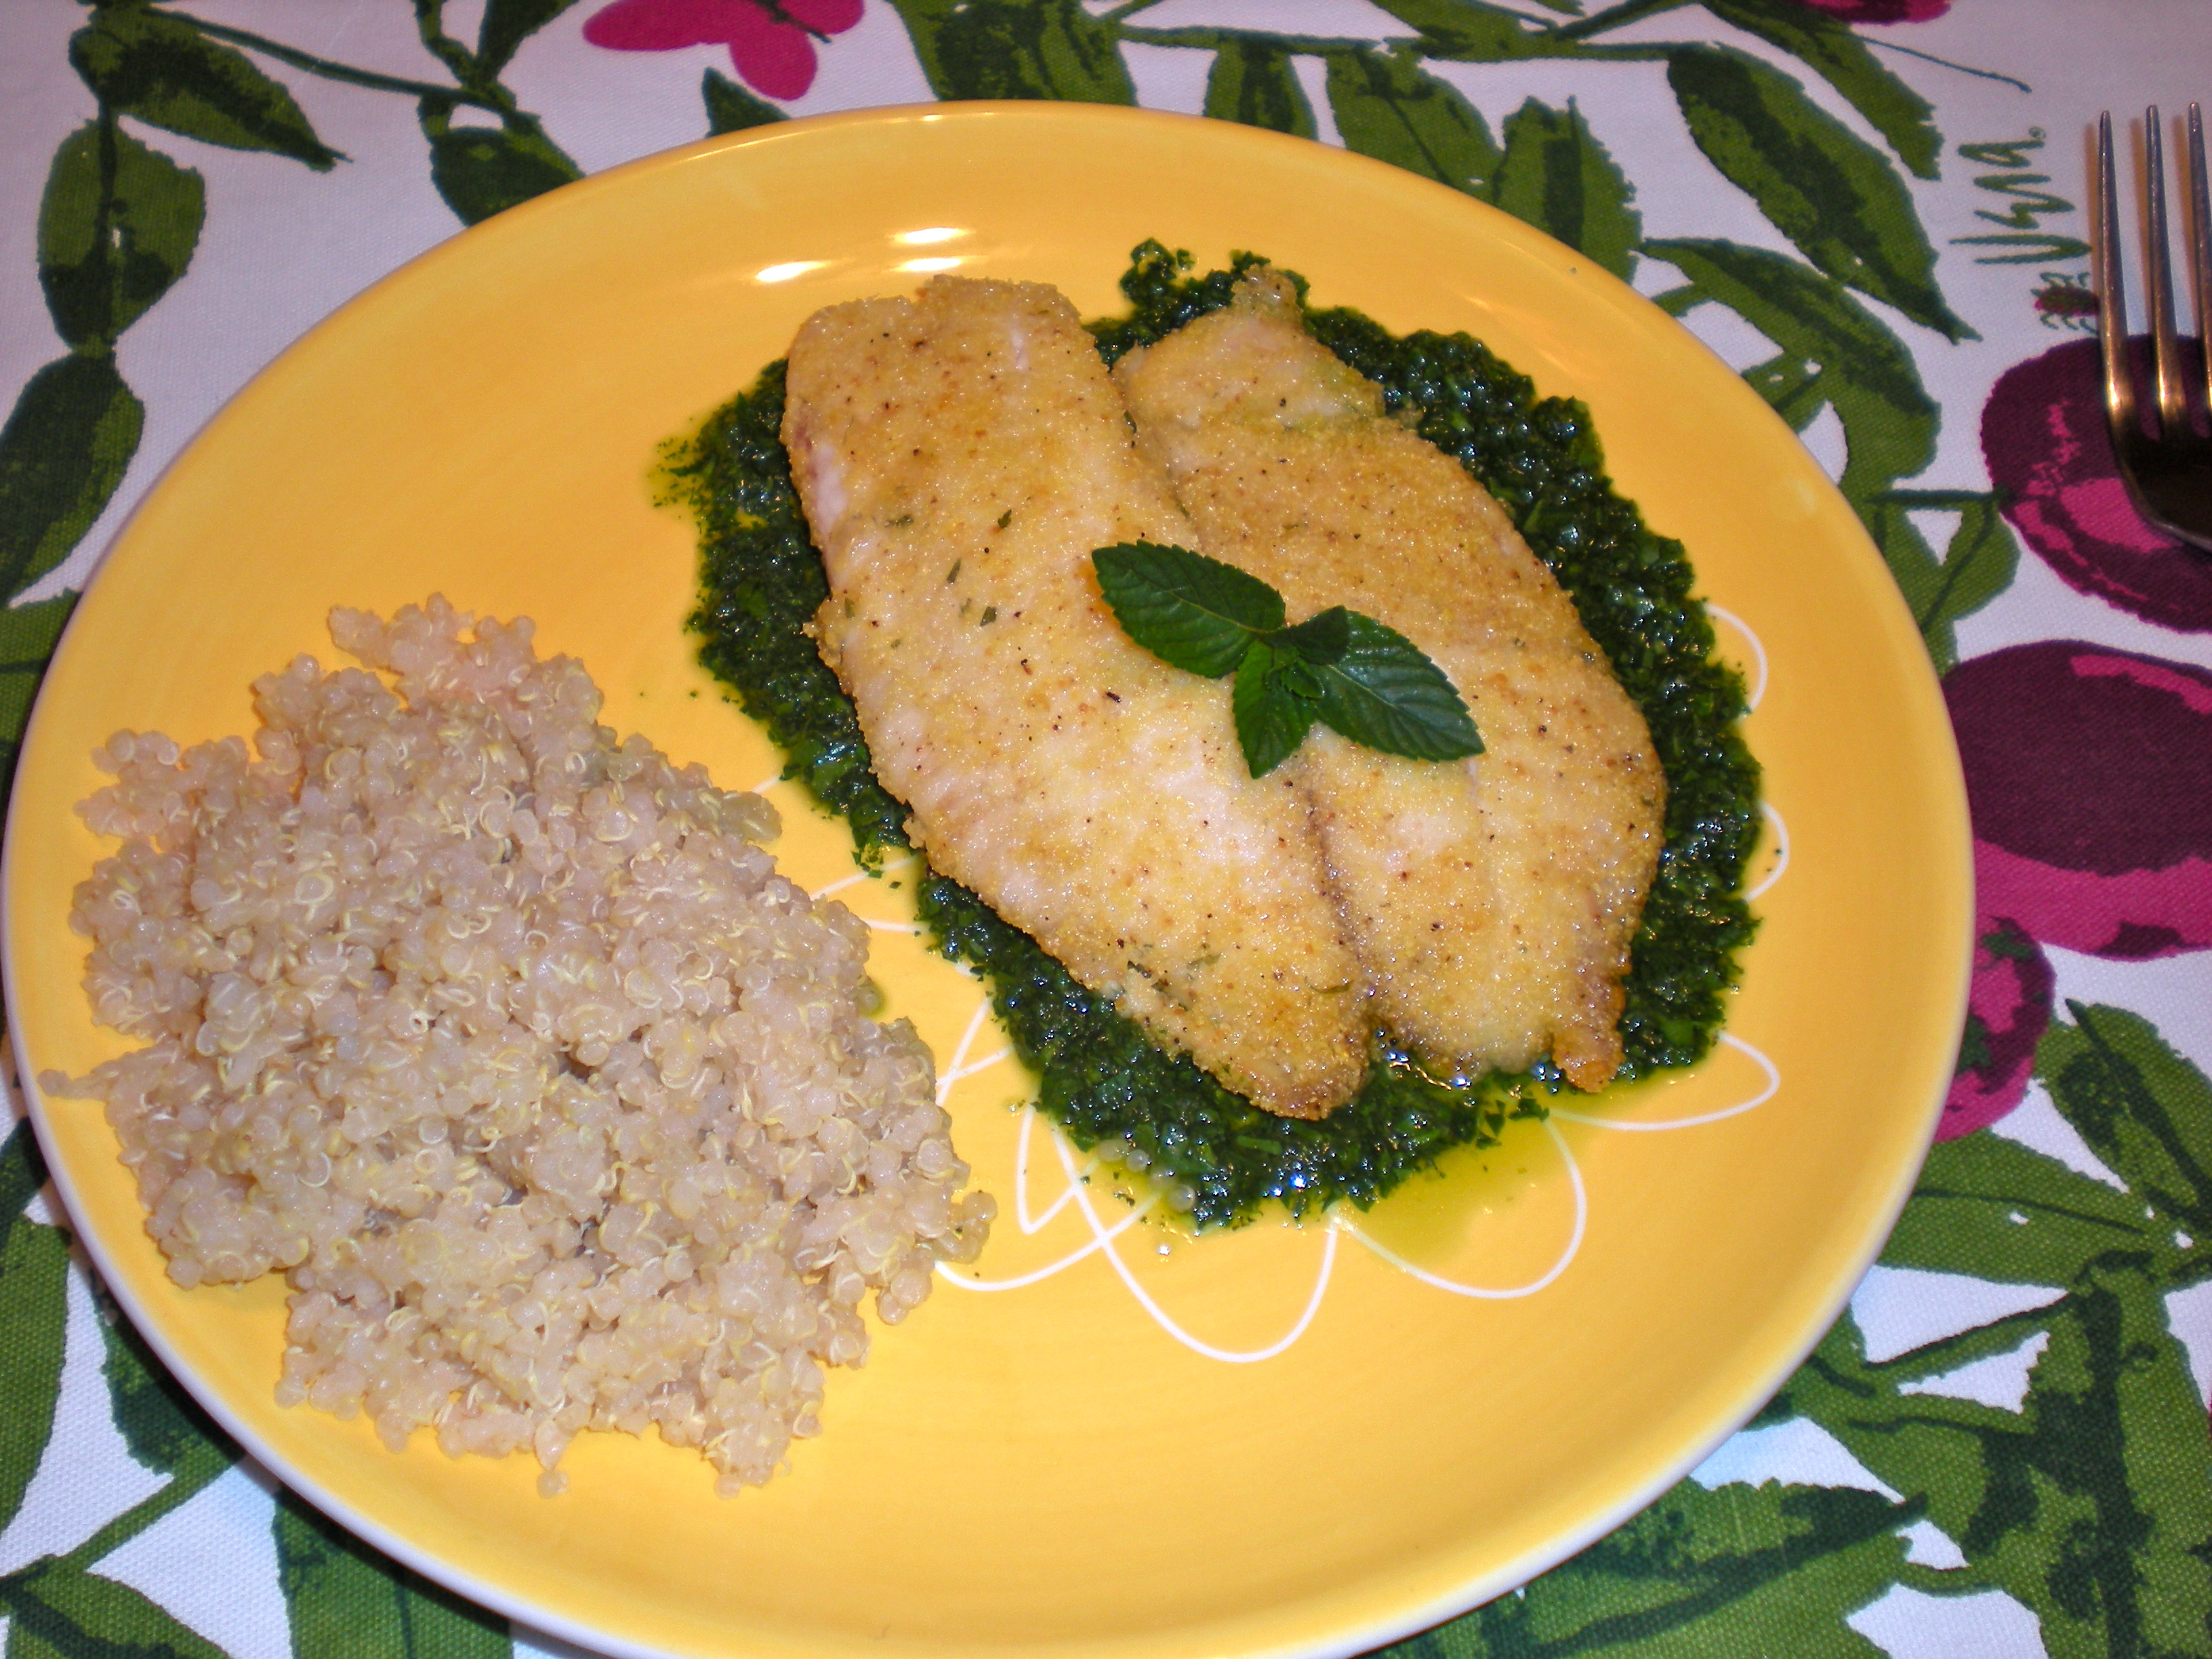 Crusted Tilapia with a Mint Spill